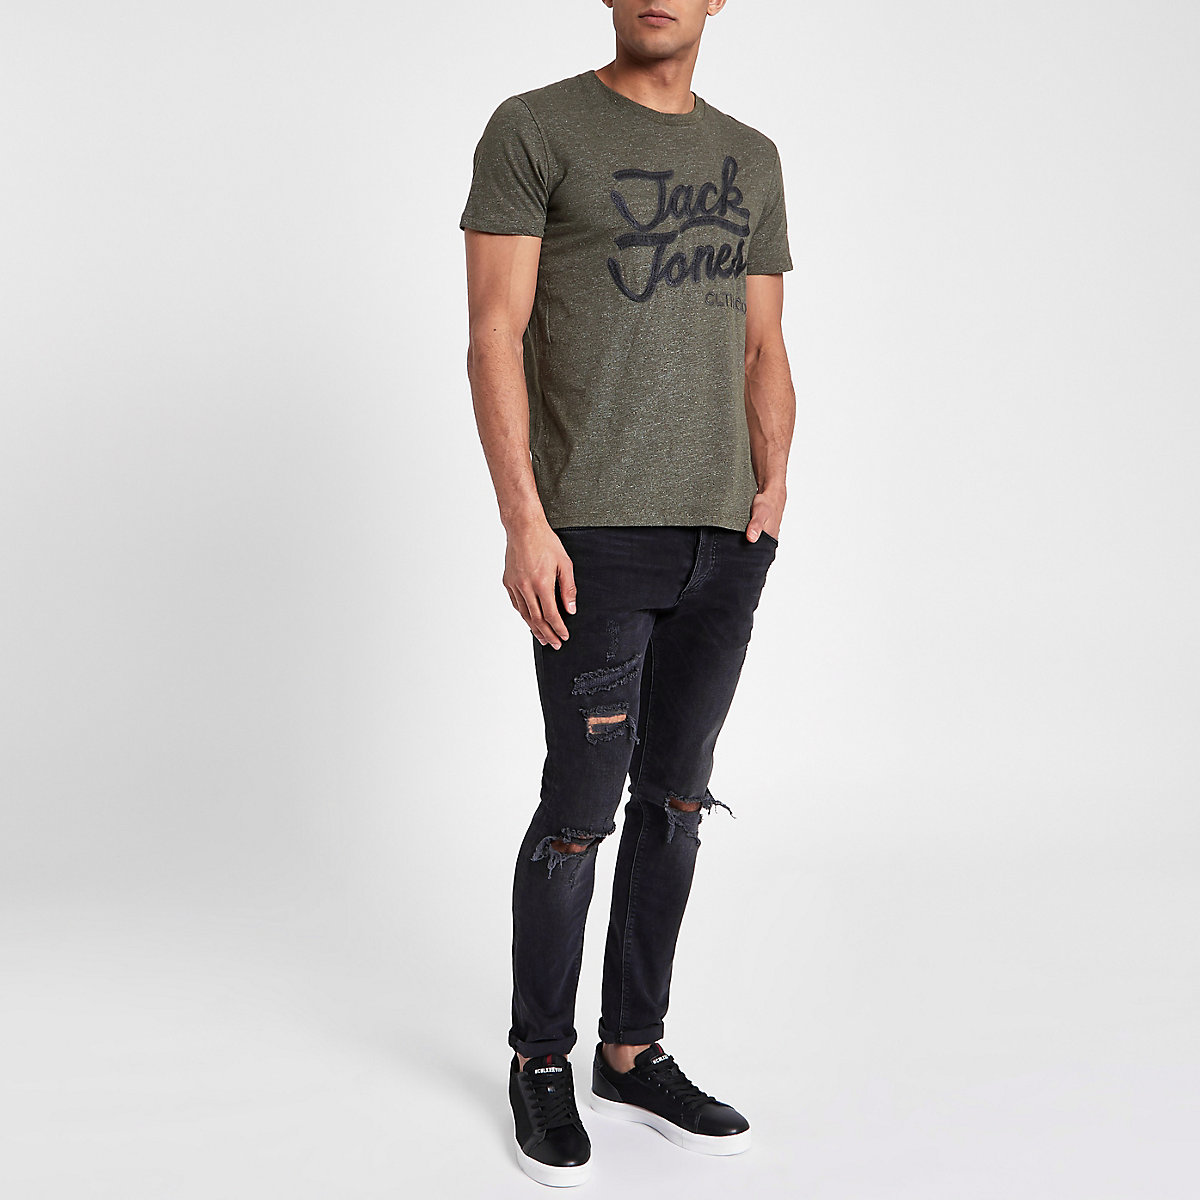 Jack & Jones Originals green broderie T-shirt